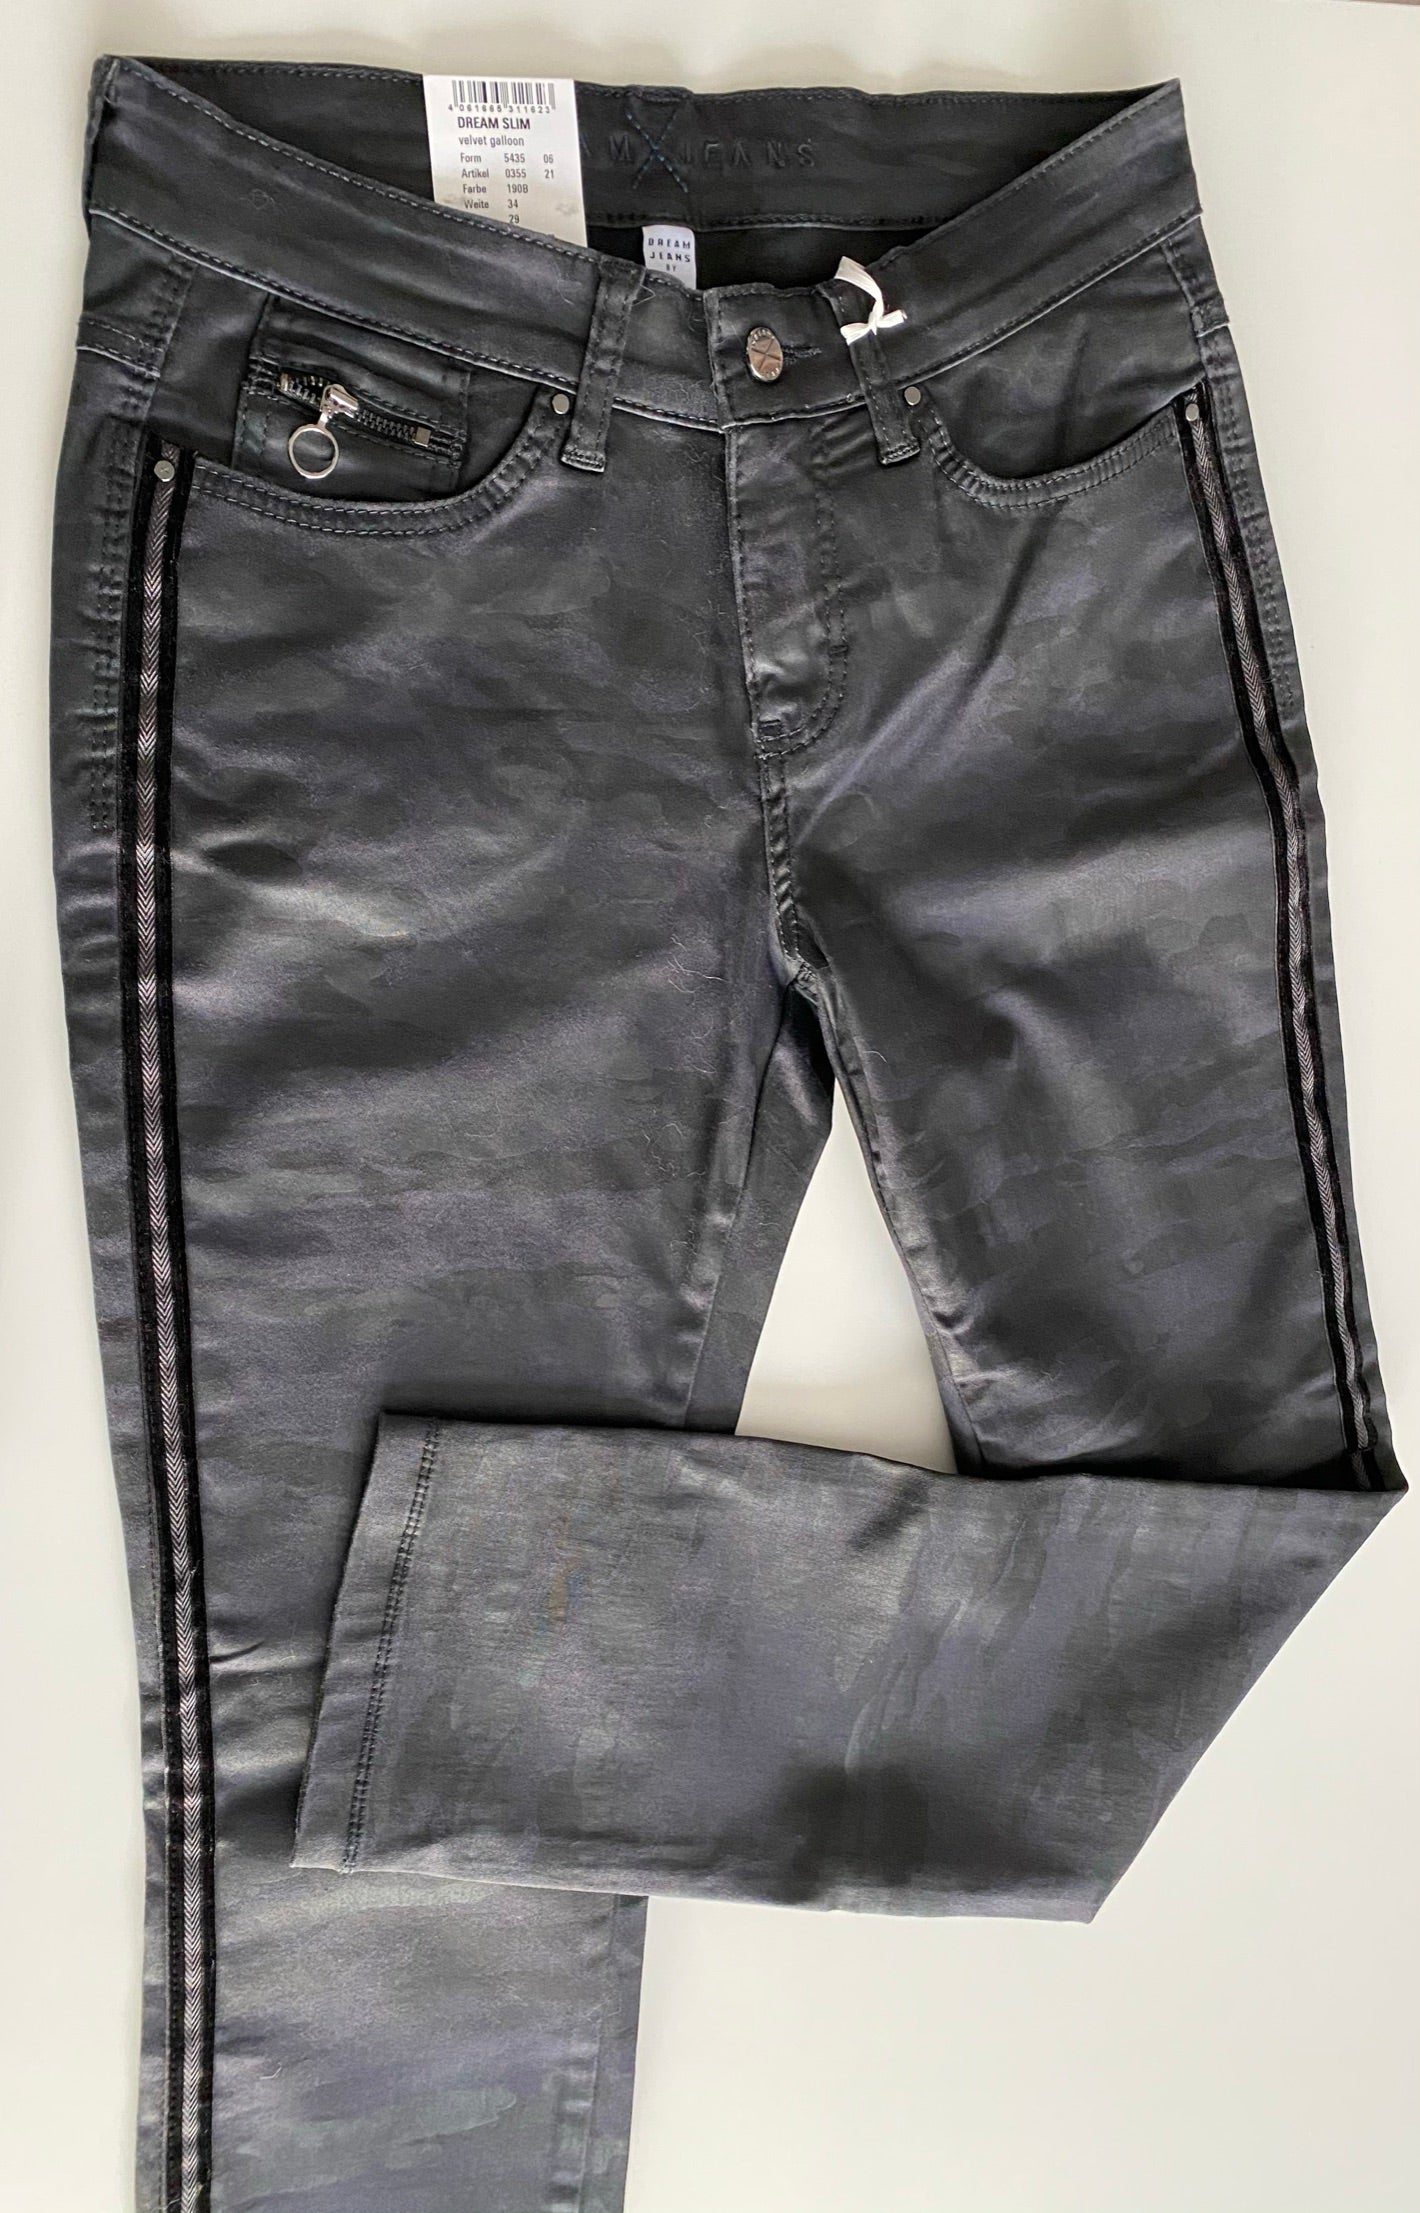 MAC - Dream Slim Jeans with Velvet Side Stitching